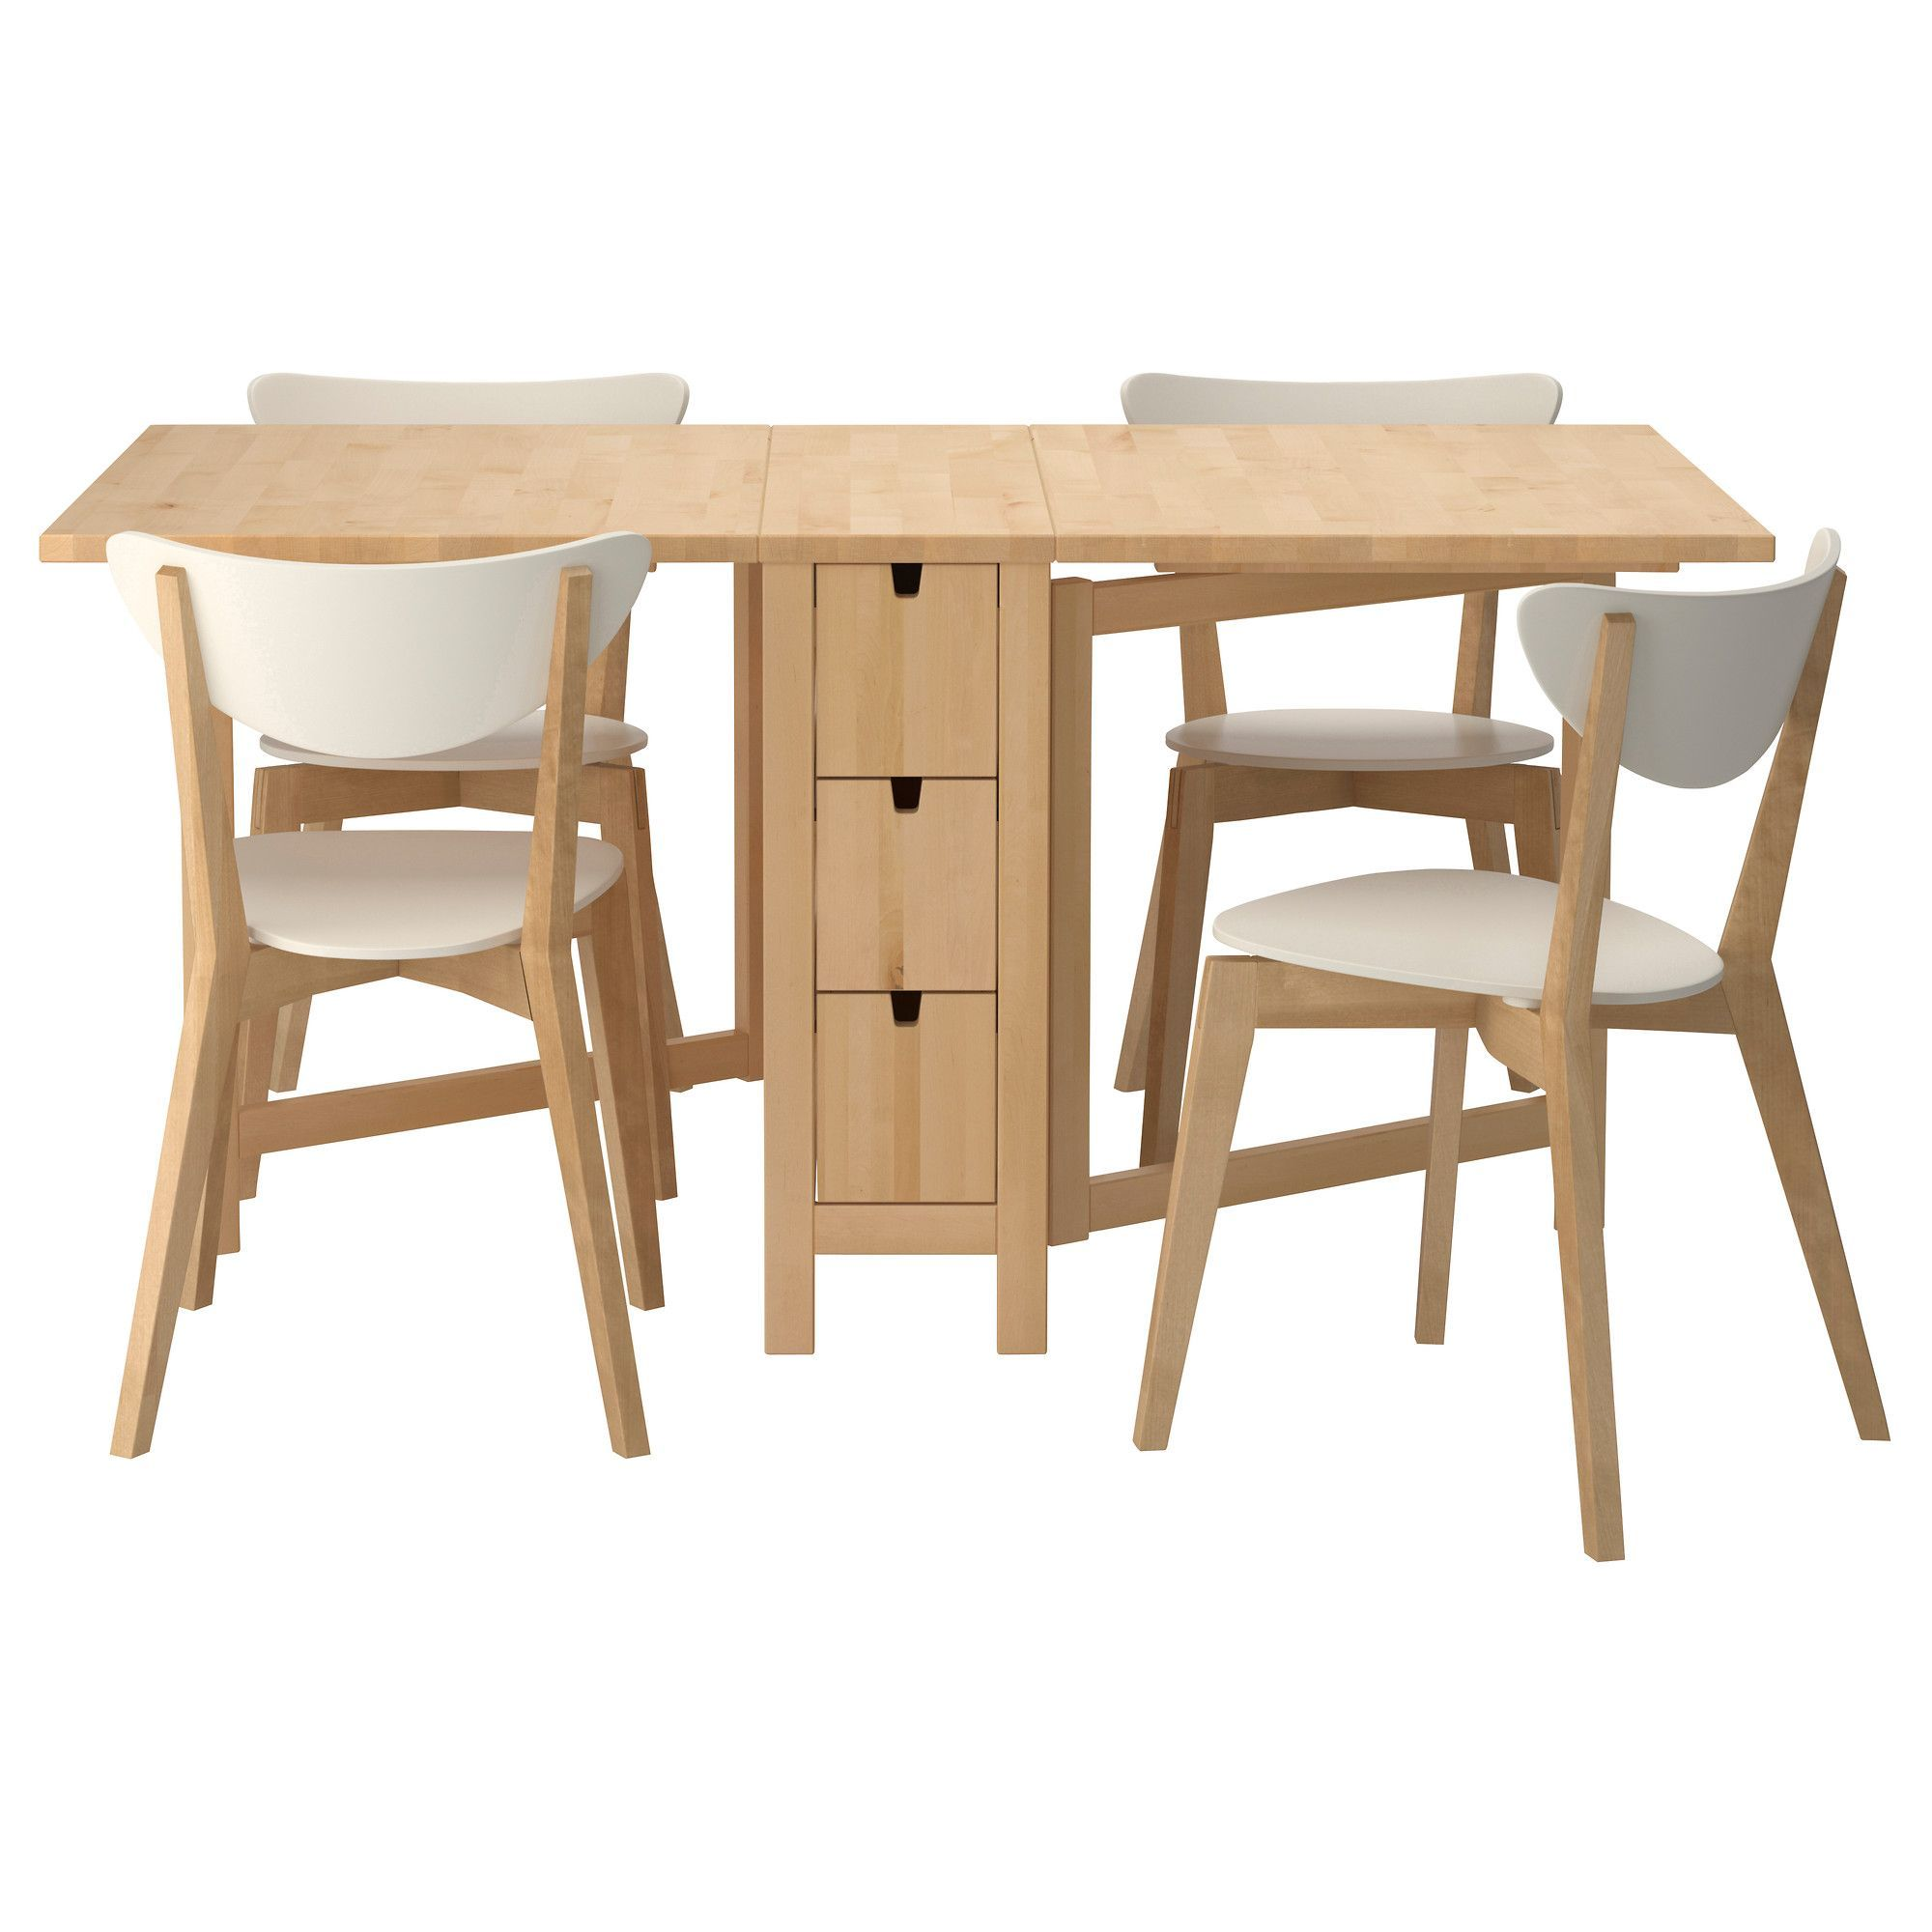 Gorgeous small dining table that can be folded complete with the chairs inspirational foldable - Dining table designs for small spaces model ...